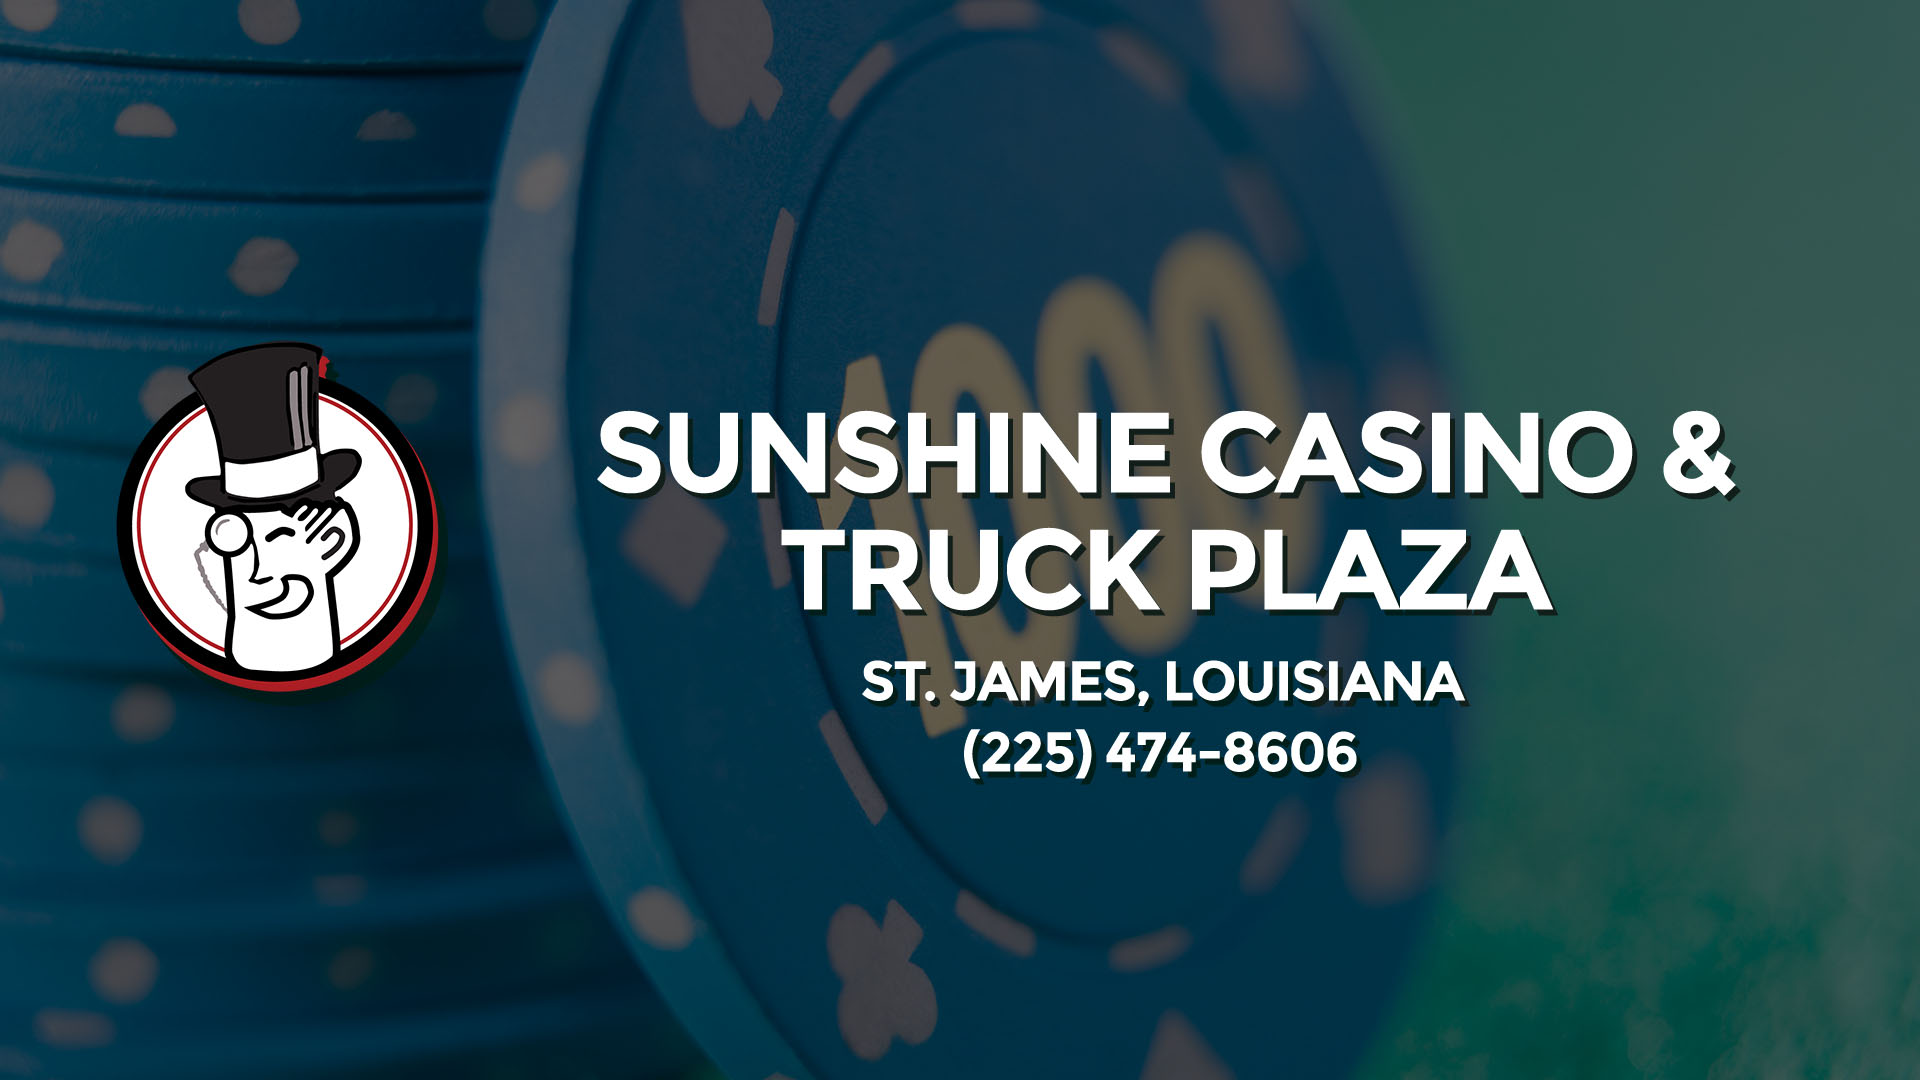 SUNSHINE CASINO & TRUCK PLAZ ST JAMES LA